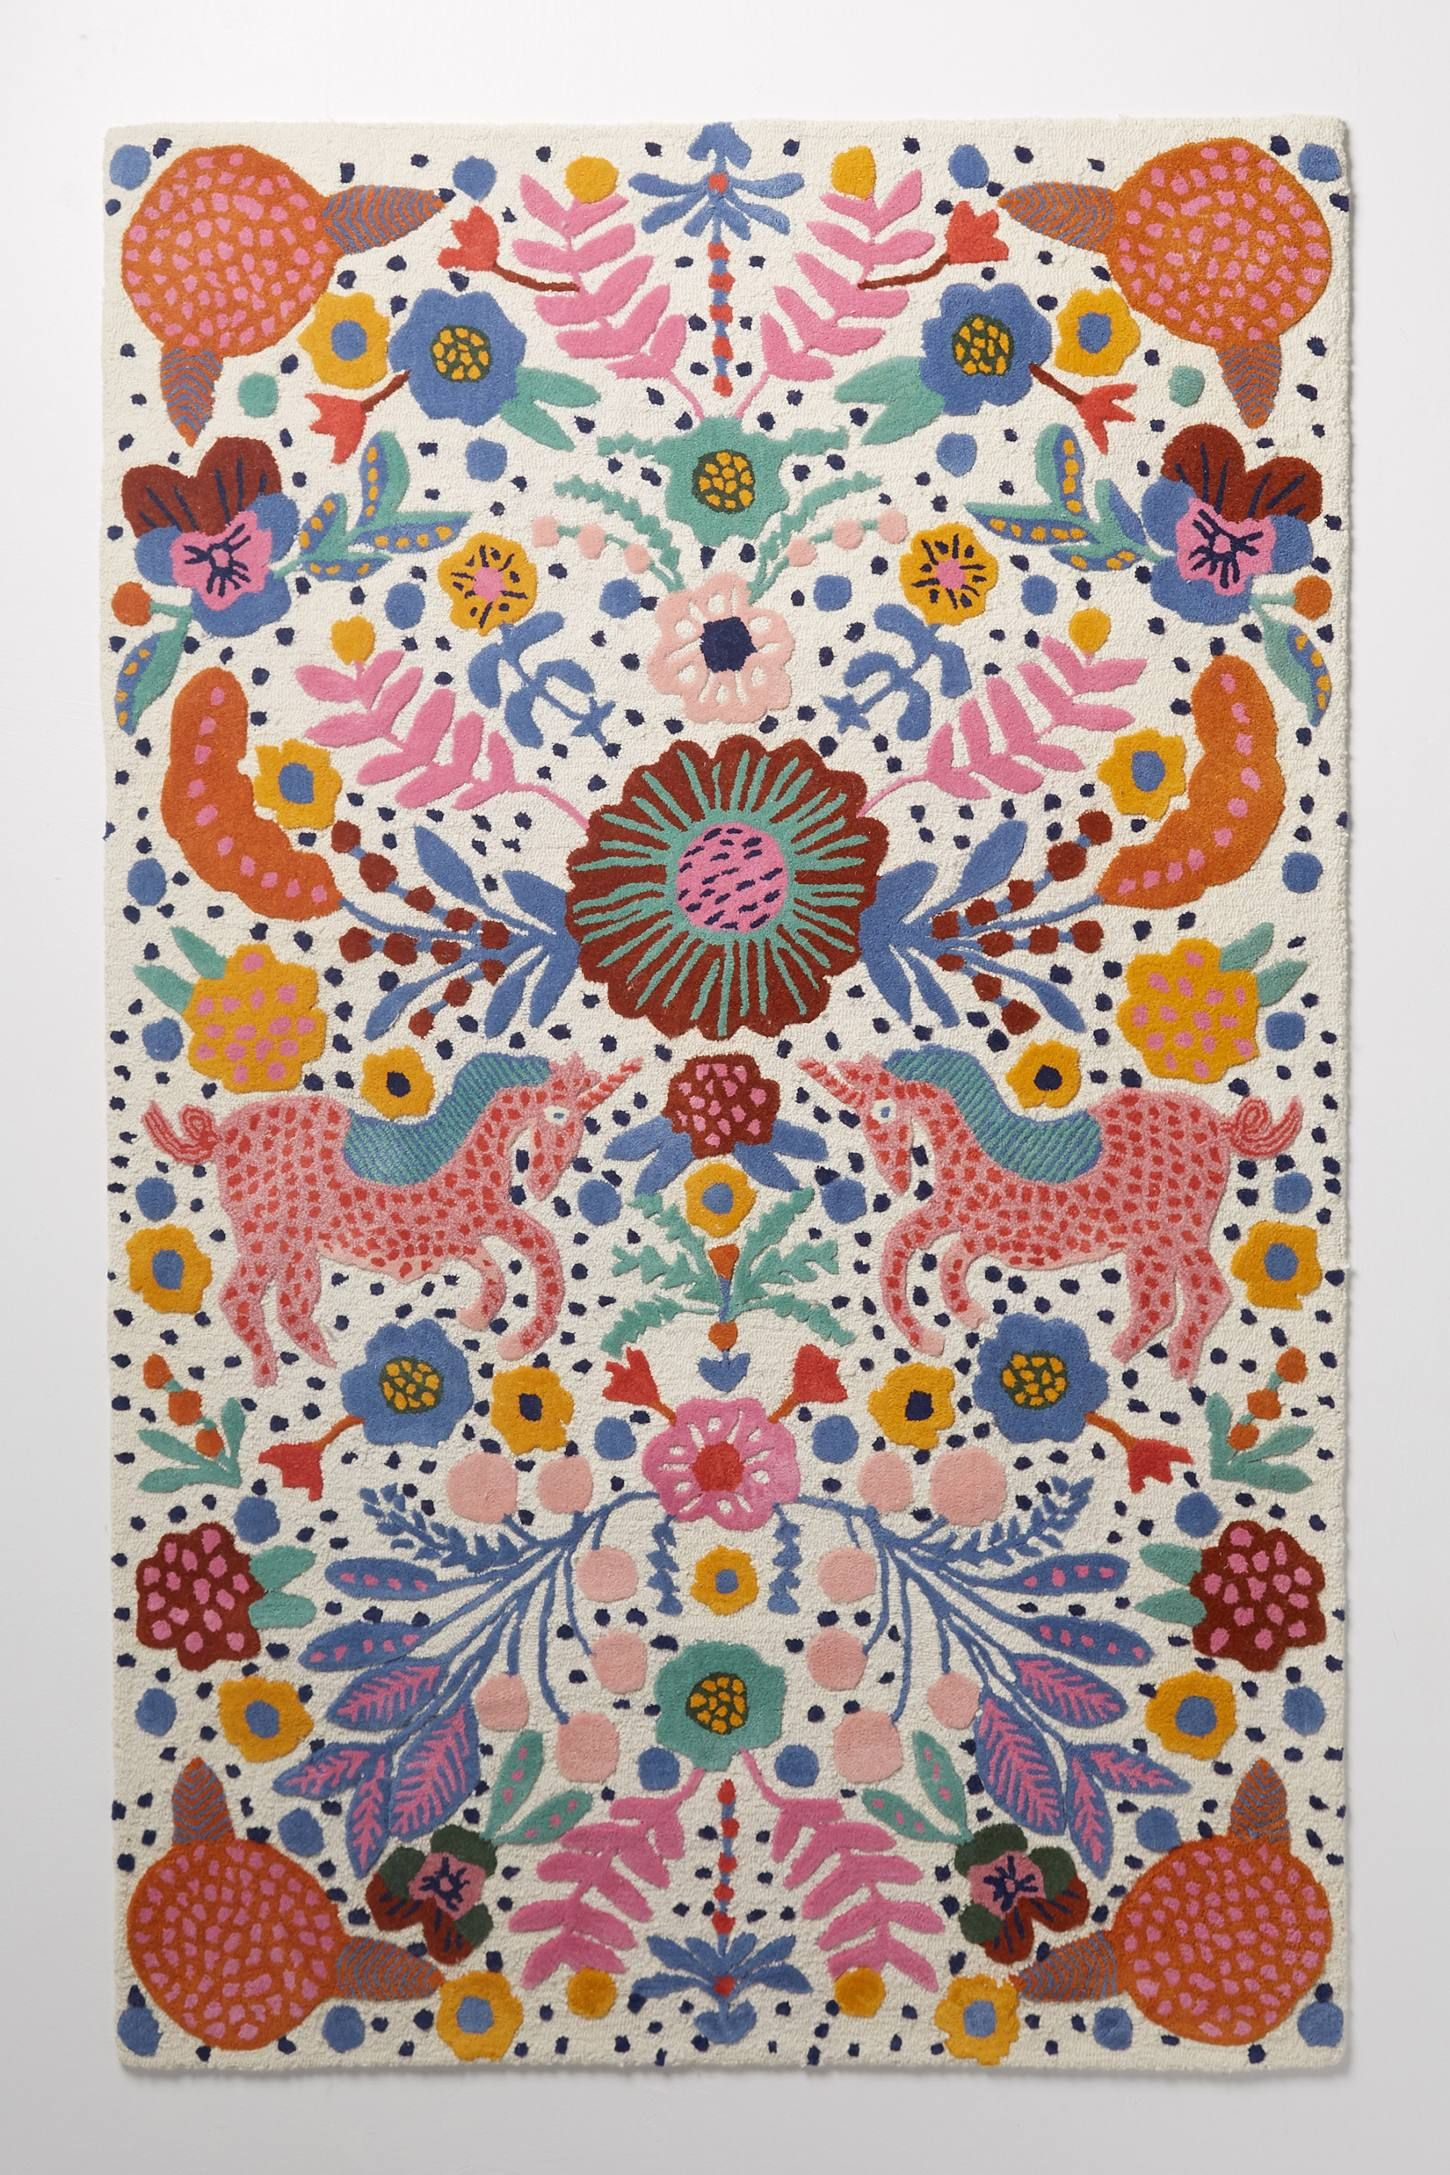 Tufted Anjulie Rug in 2020 Rugs on carpet, Rugs, Natural